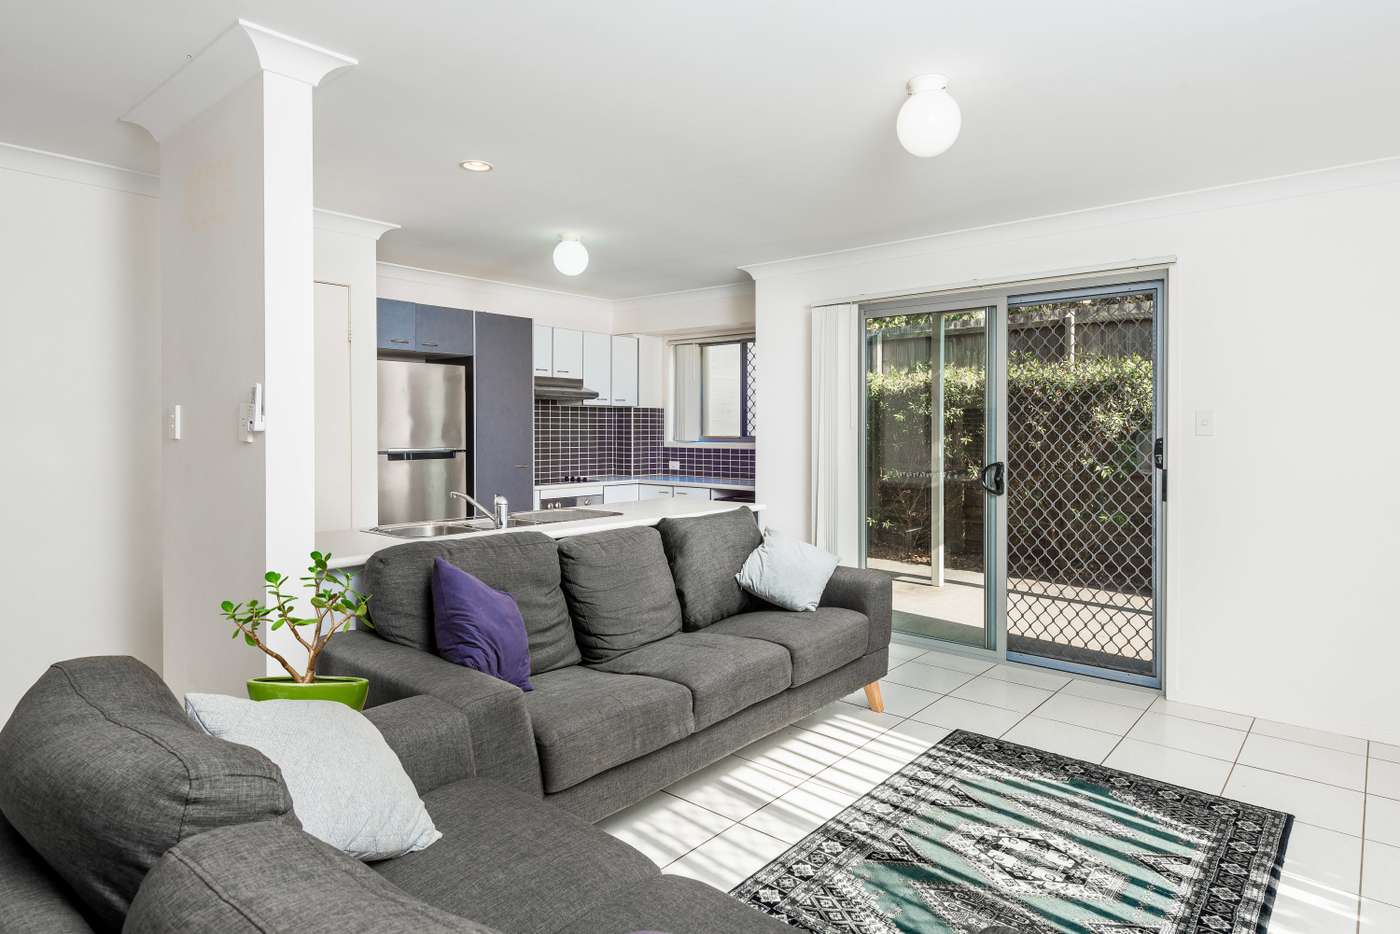 Main view of Homely townhouse listing, Unit 61/336 King Ave, Durack, QLD 4077